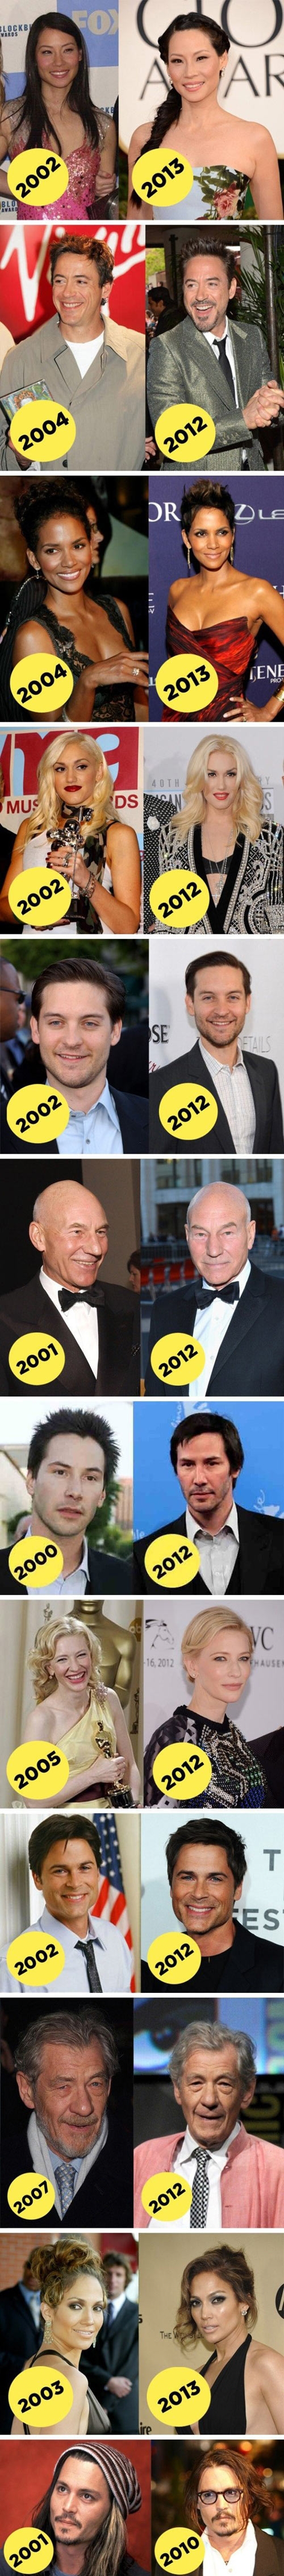 Celebrities aging gracefully.